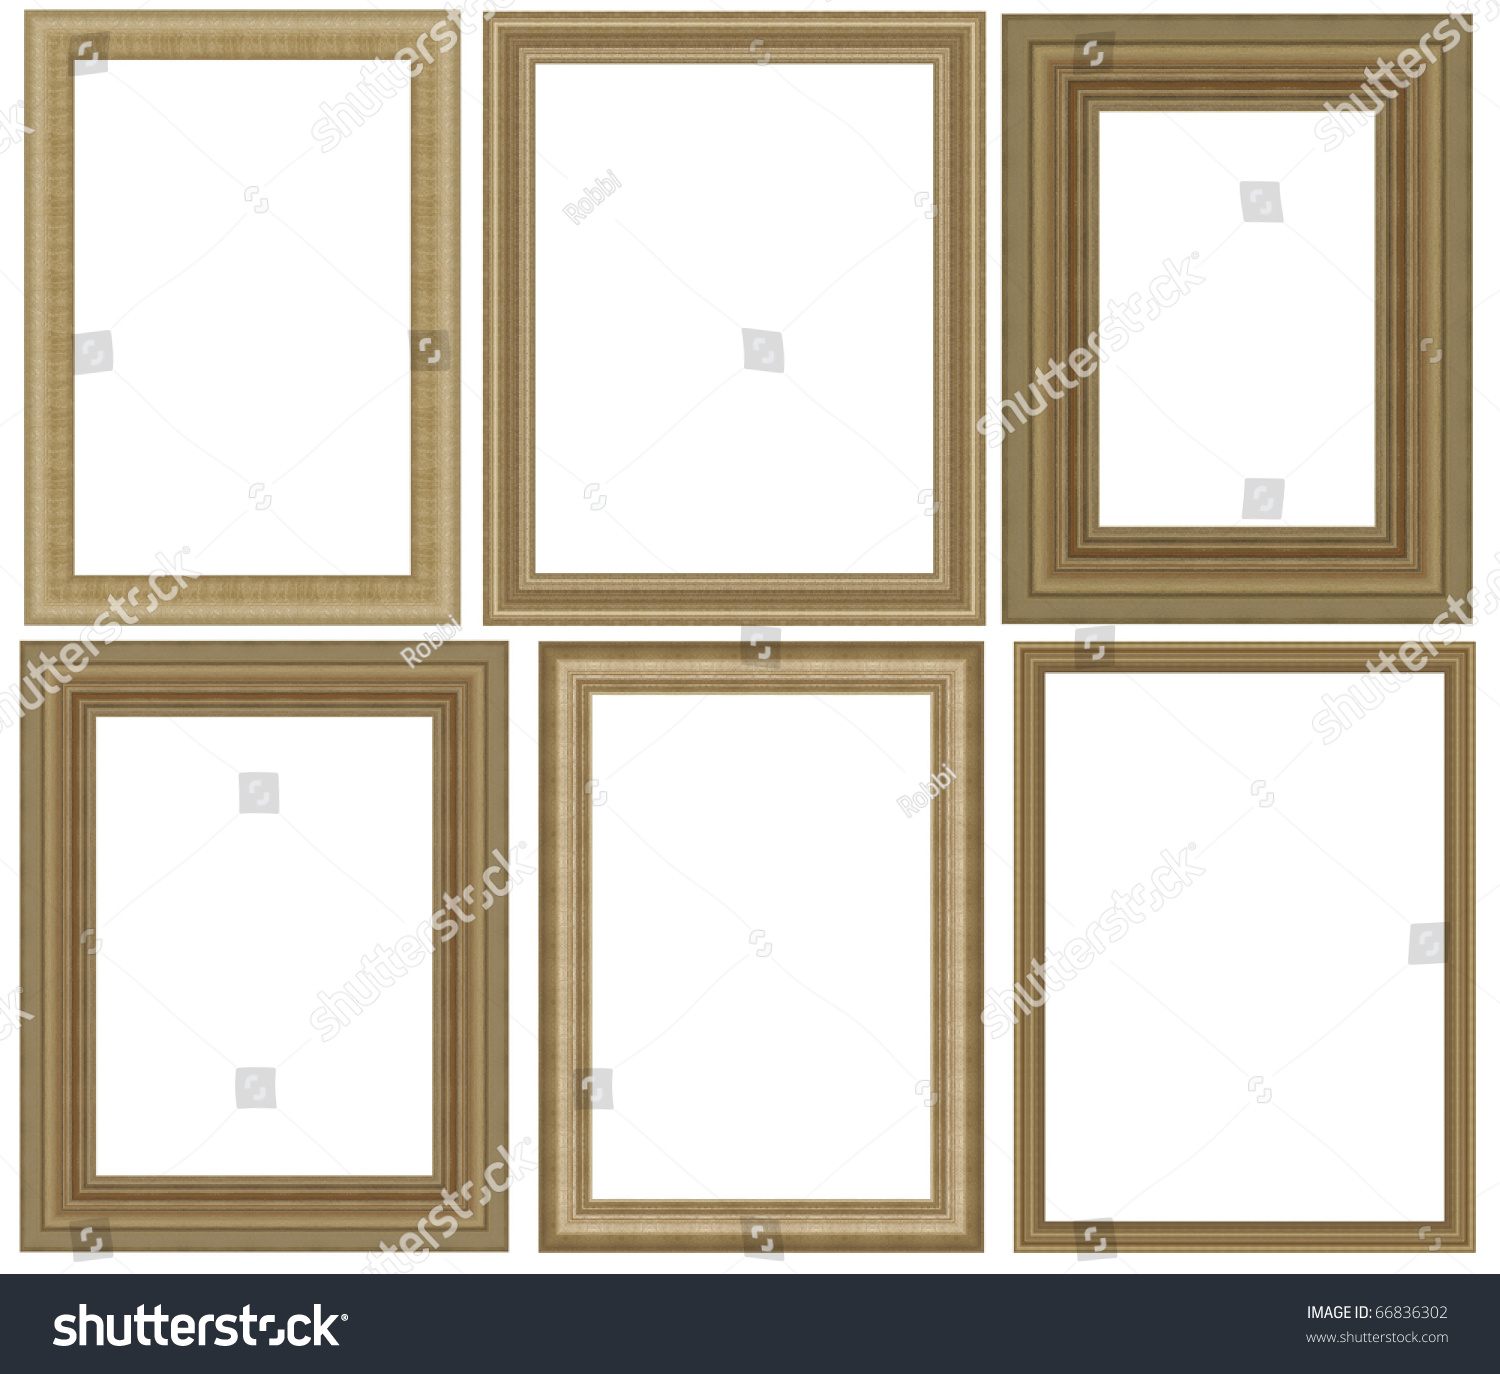 simple wood picture frames. Simple Wood Picture FramesPhoto Frames Pictures Design .